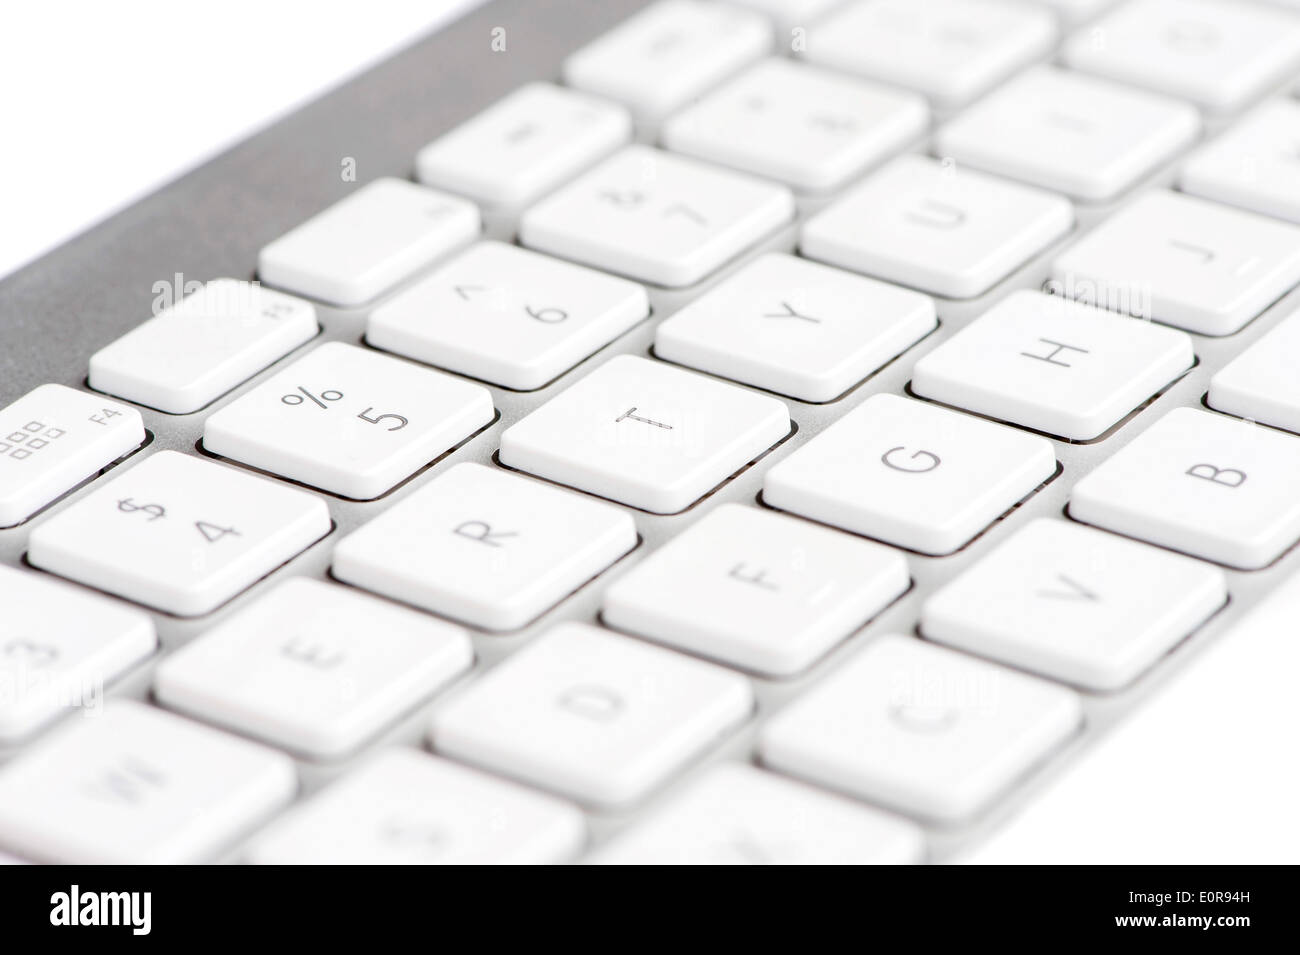 Apple mac white Keyboard focused on the letter T - Stock Image